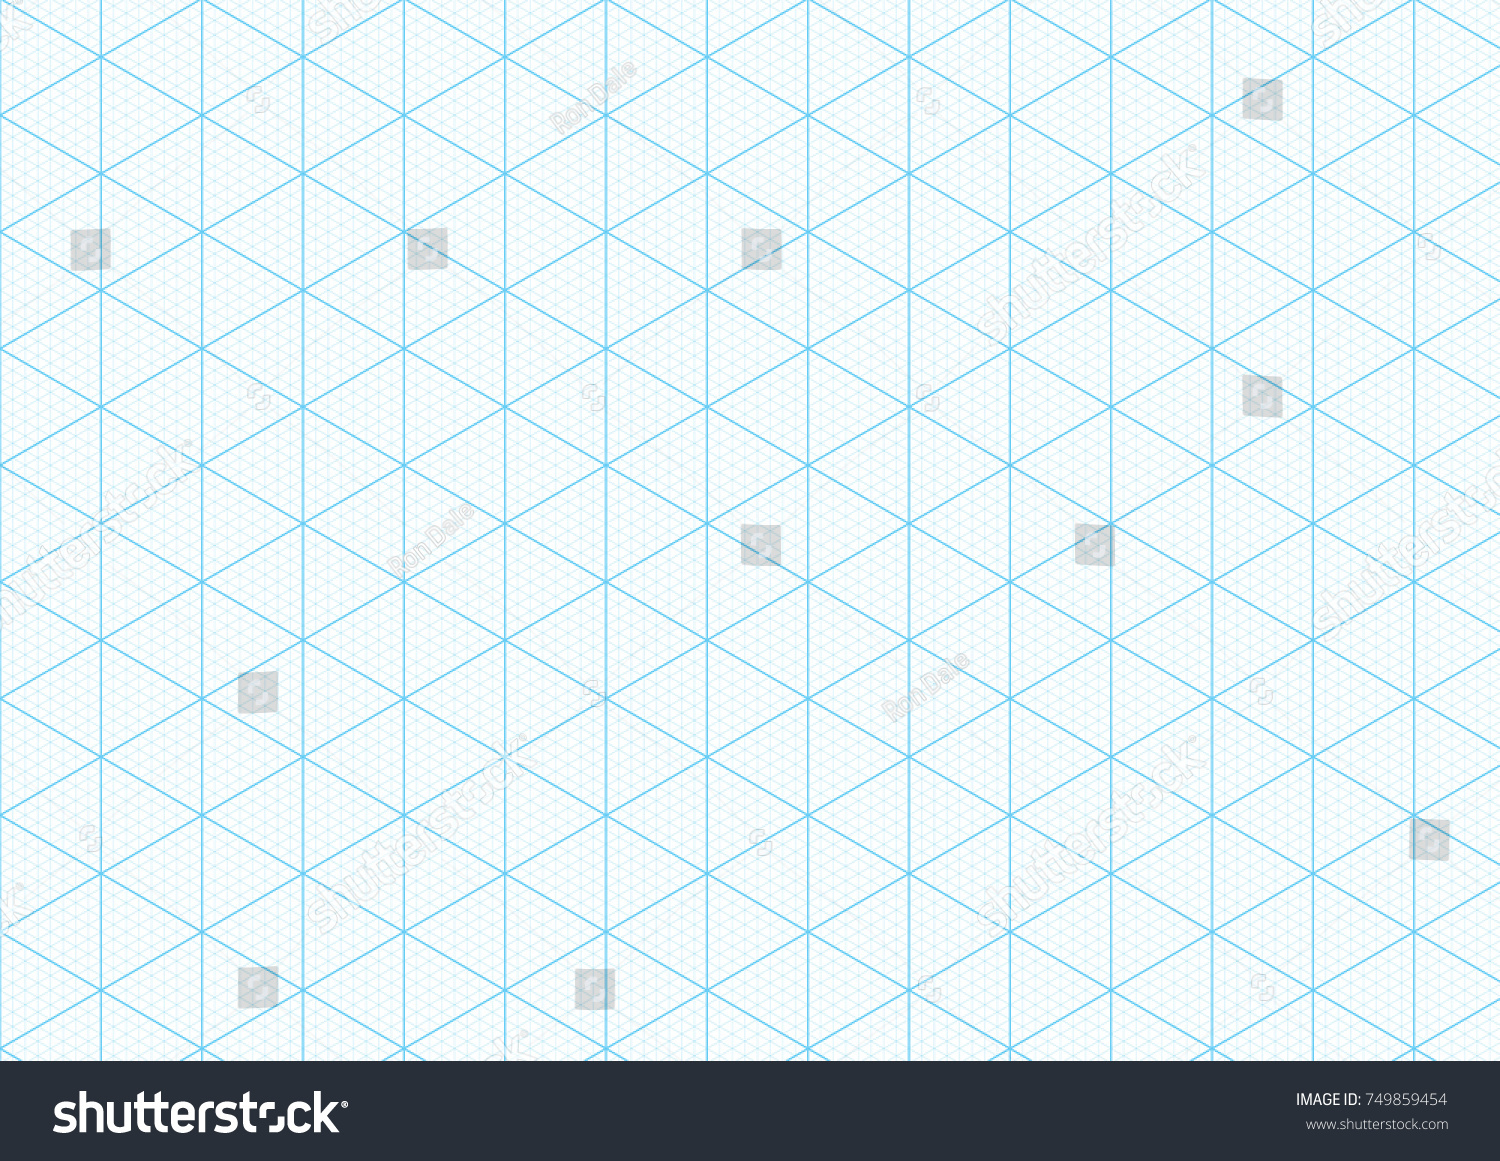 Isometric Graph Paper Background With Plotting Triangular And Hexagonal  Ruler Guide Line Grid Texture For Engineering